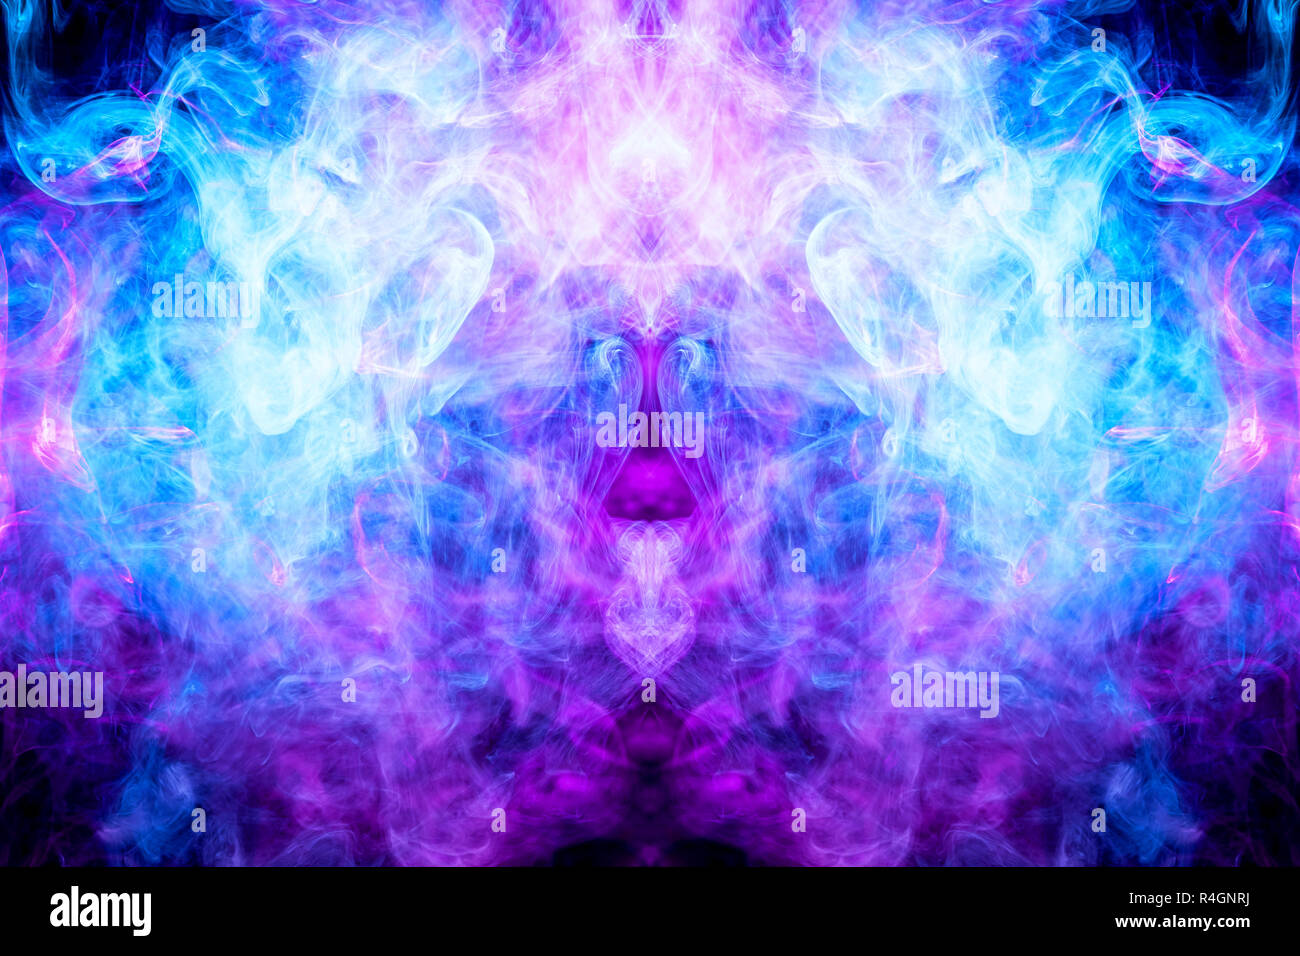 Pink And Blue Cloud Of Smoke Of Black Isolated Background In The